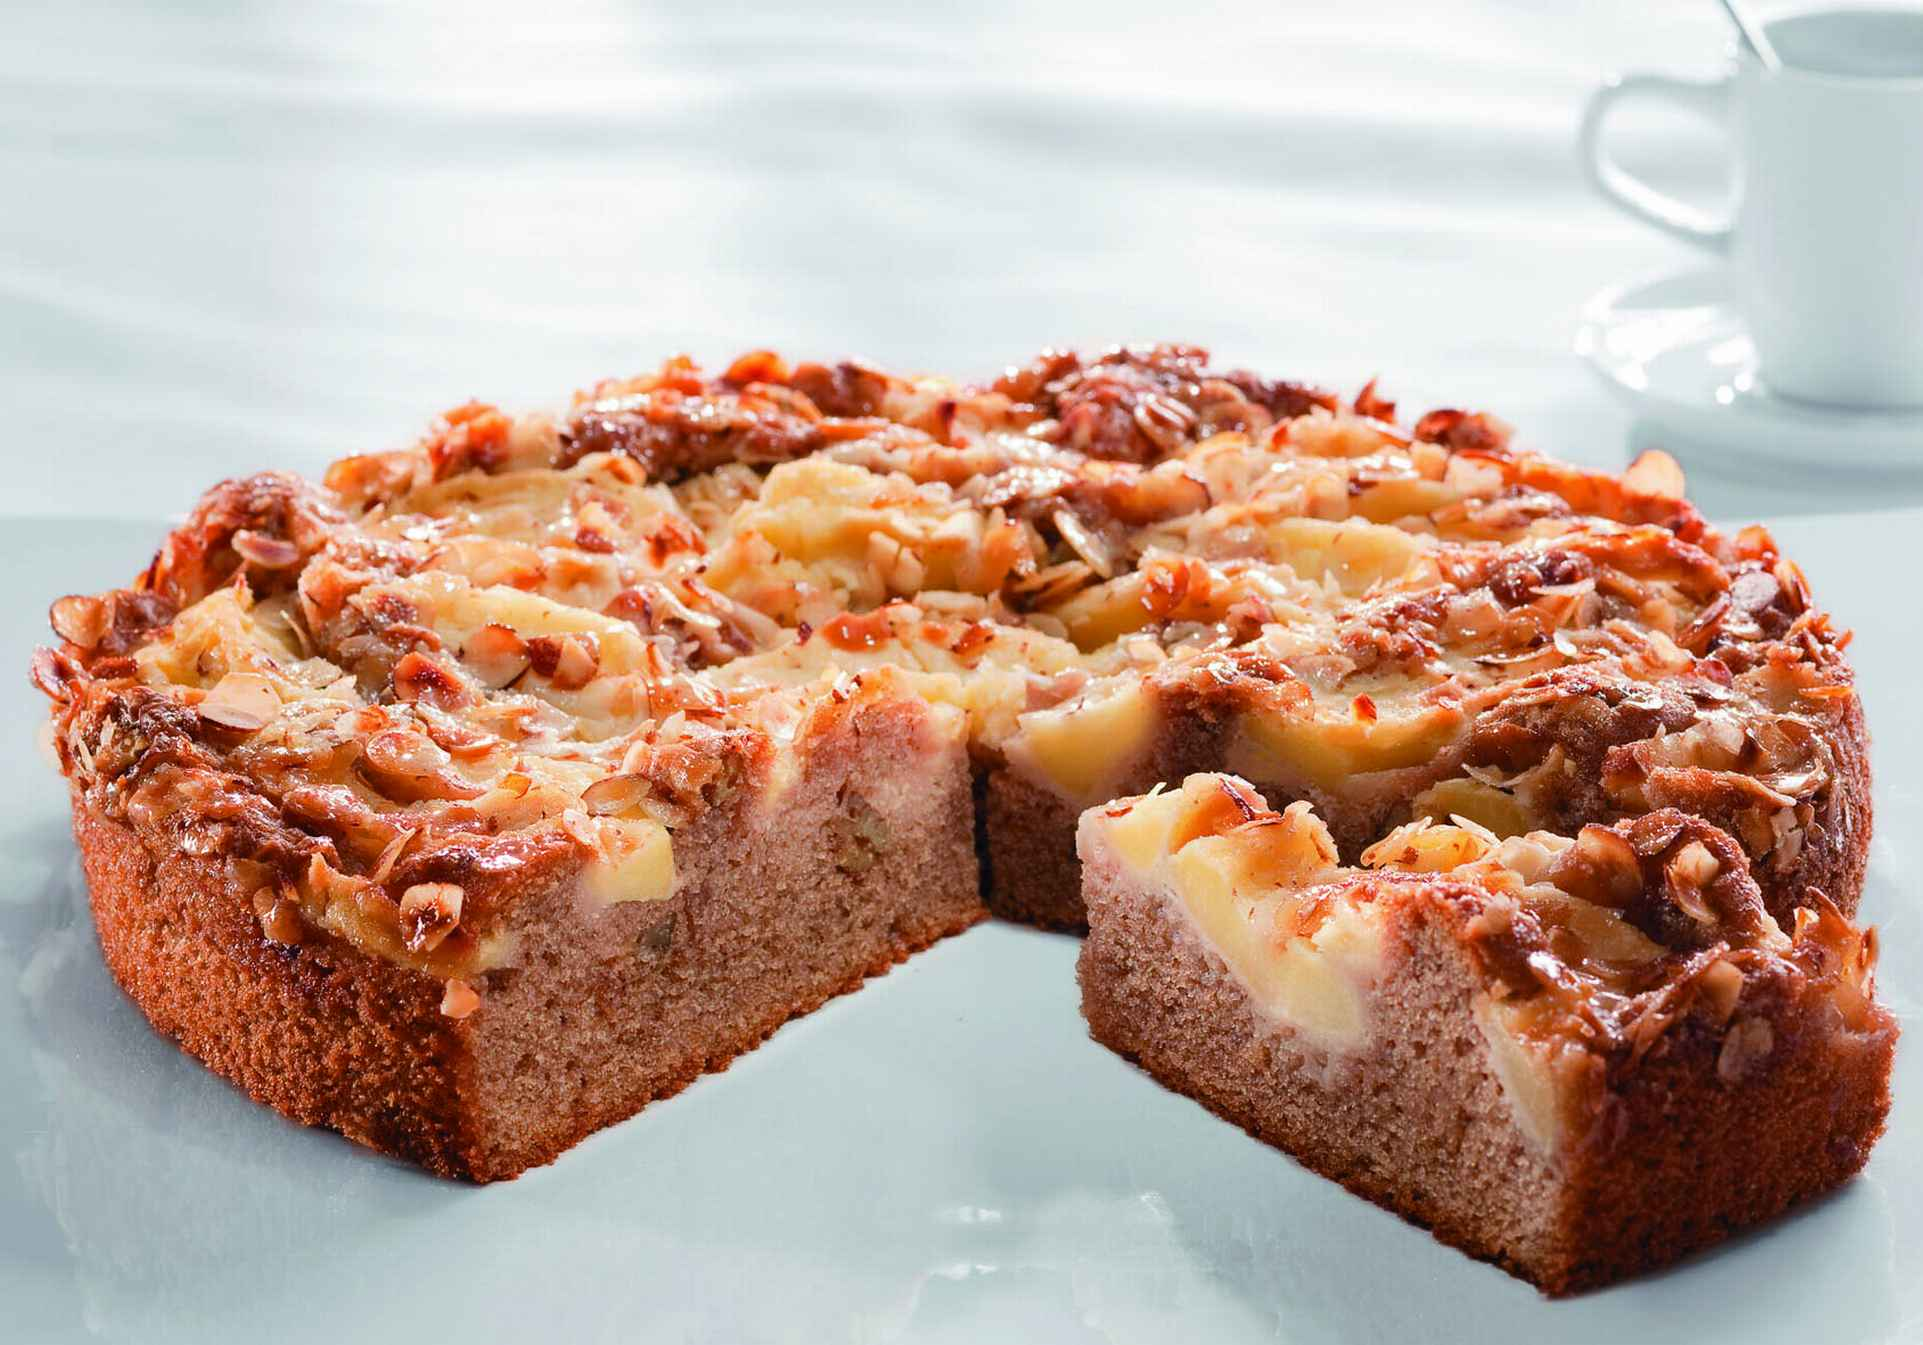 VIENNESE APPLE CAKE